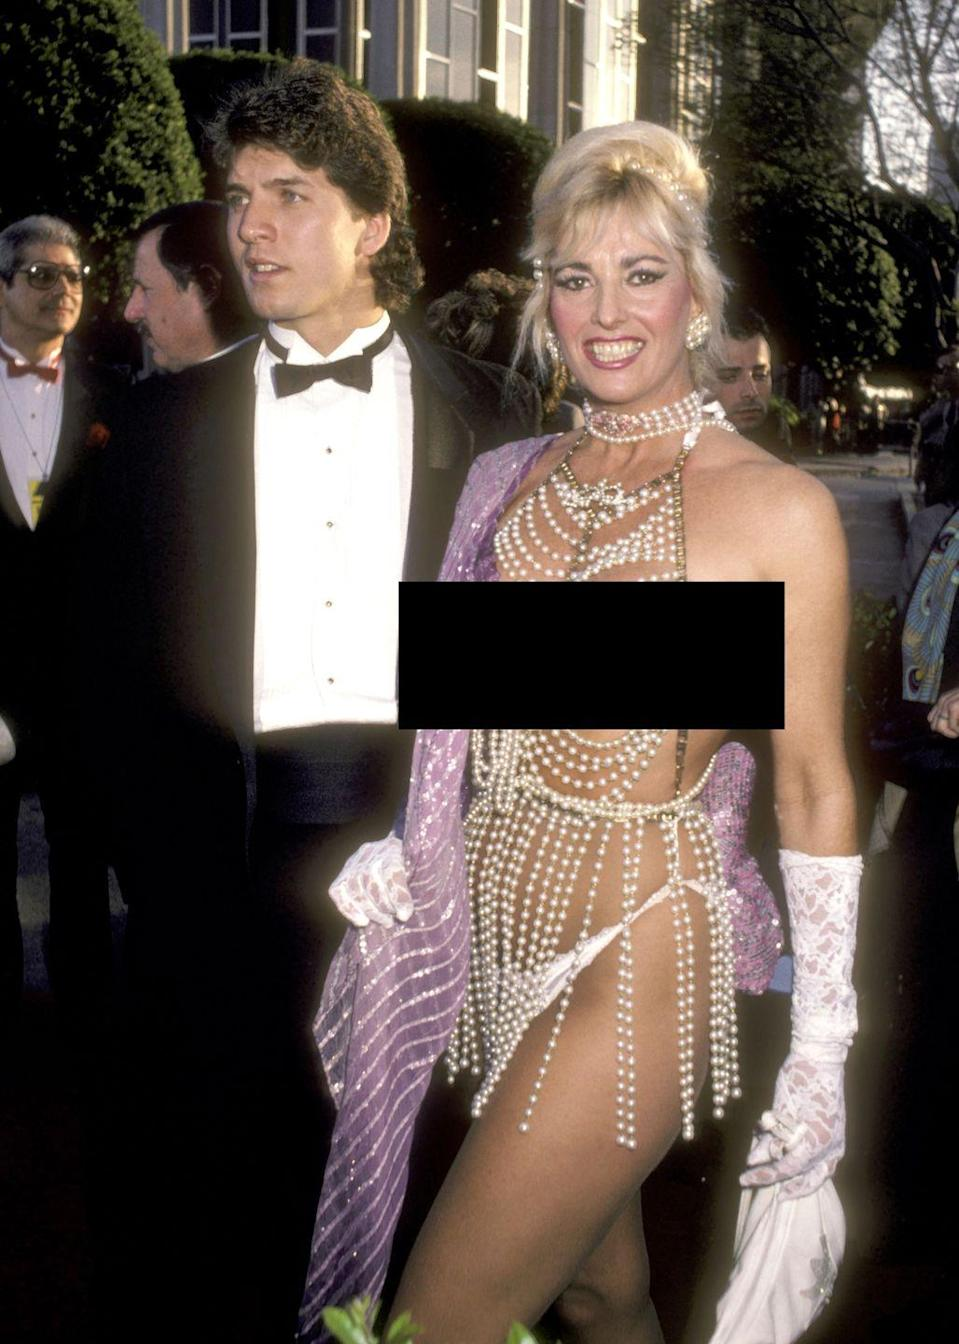 """<p>Actress Edy Williams was known for her provocative outfits, but none stand out quite as much as <a href=""""https://www.goodhousekeeping.com/life/entertainment/g5148/oscar-scandals/?slide=13"""" rel=""""nofollow noopener"""" target=""""_blank"""" data-ylk=""""slk:this 1986 getup"""" class=""""link rapid-noclick-resp"""">this 1986 getup</a>. Let's just say those pearls left very little to the imagination.</p>"""